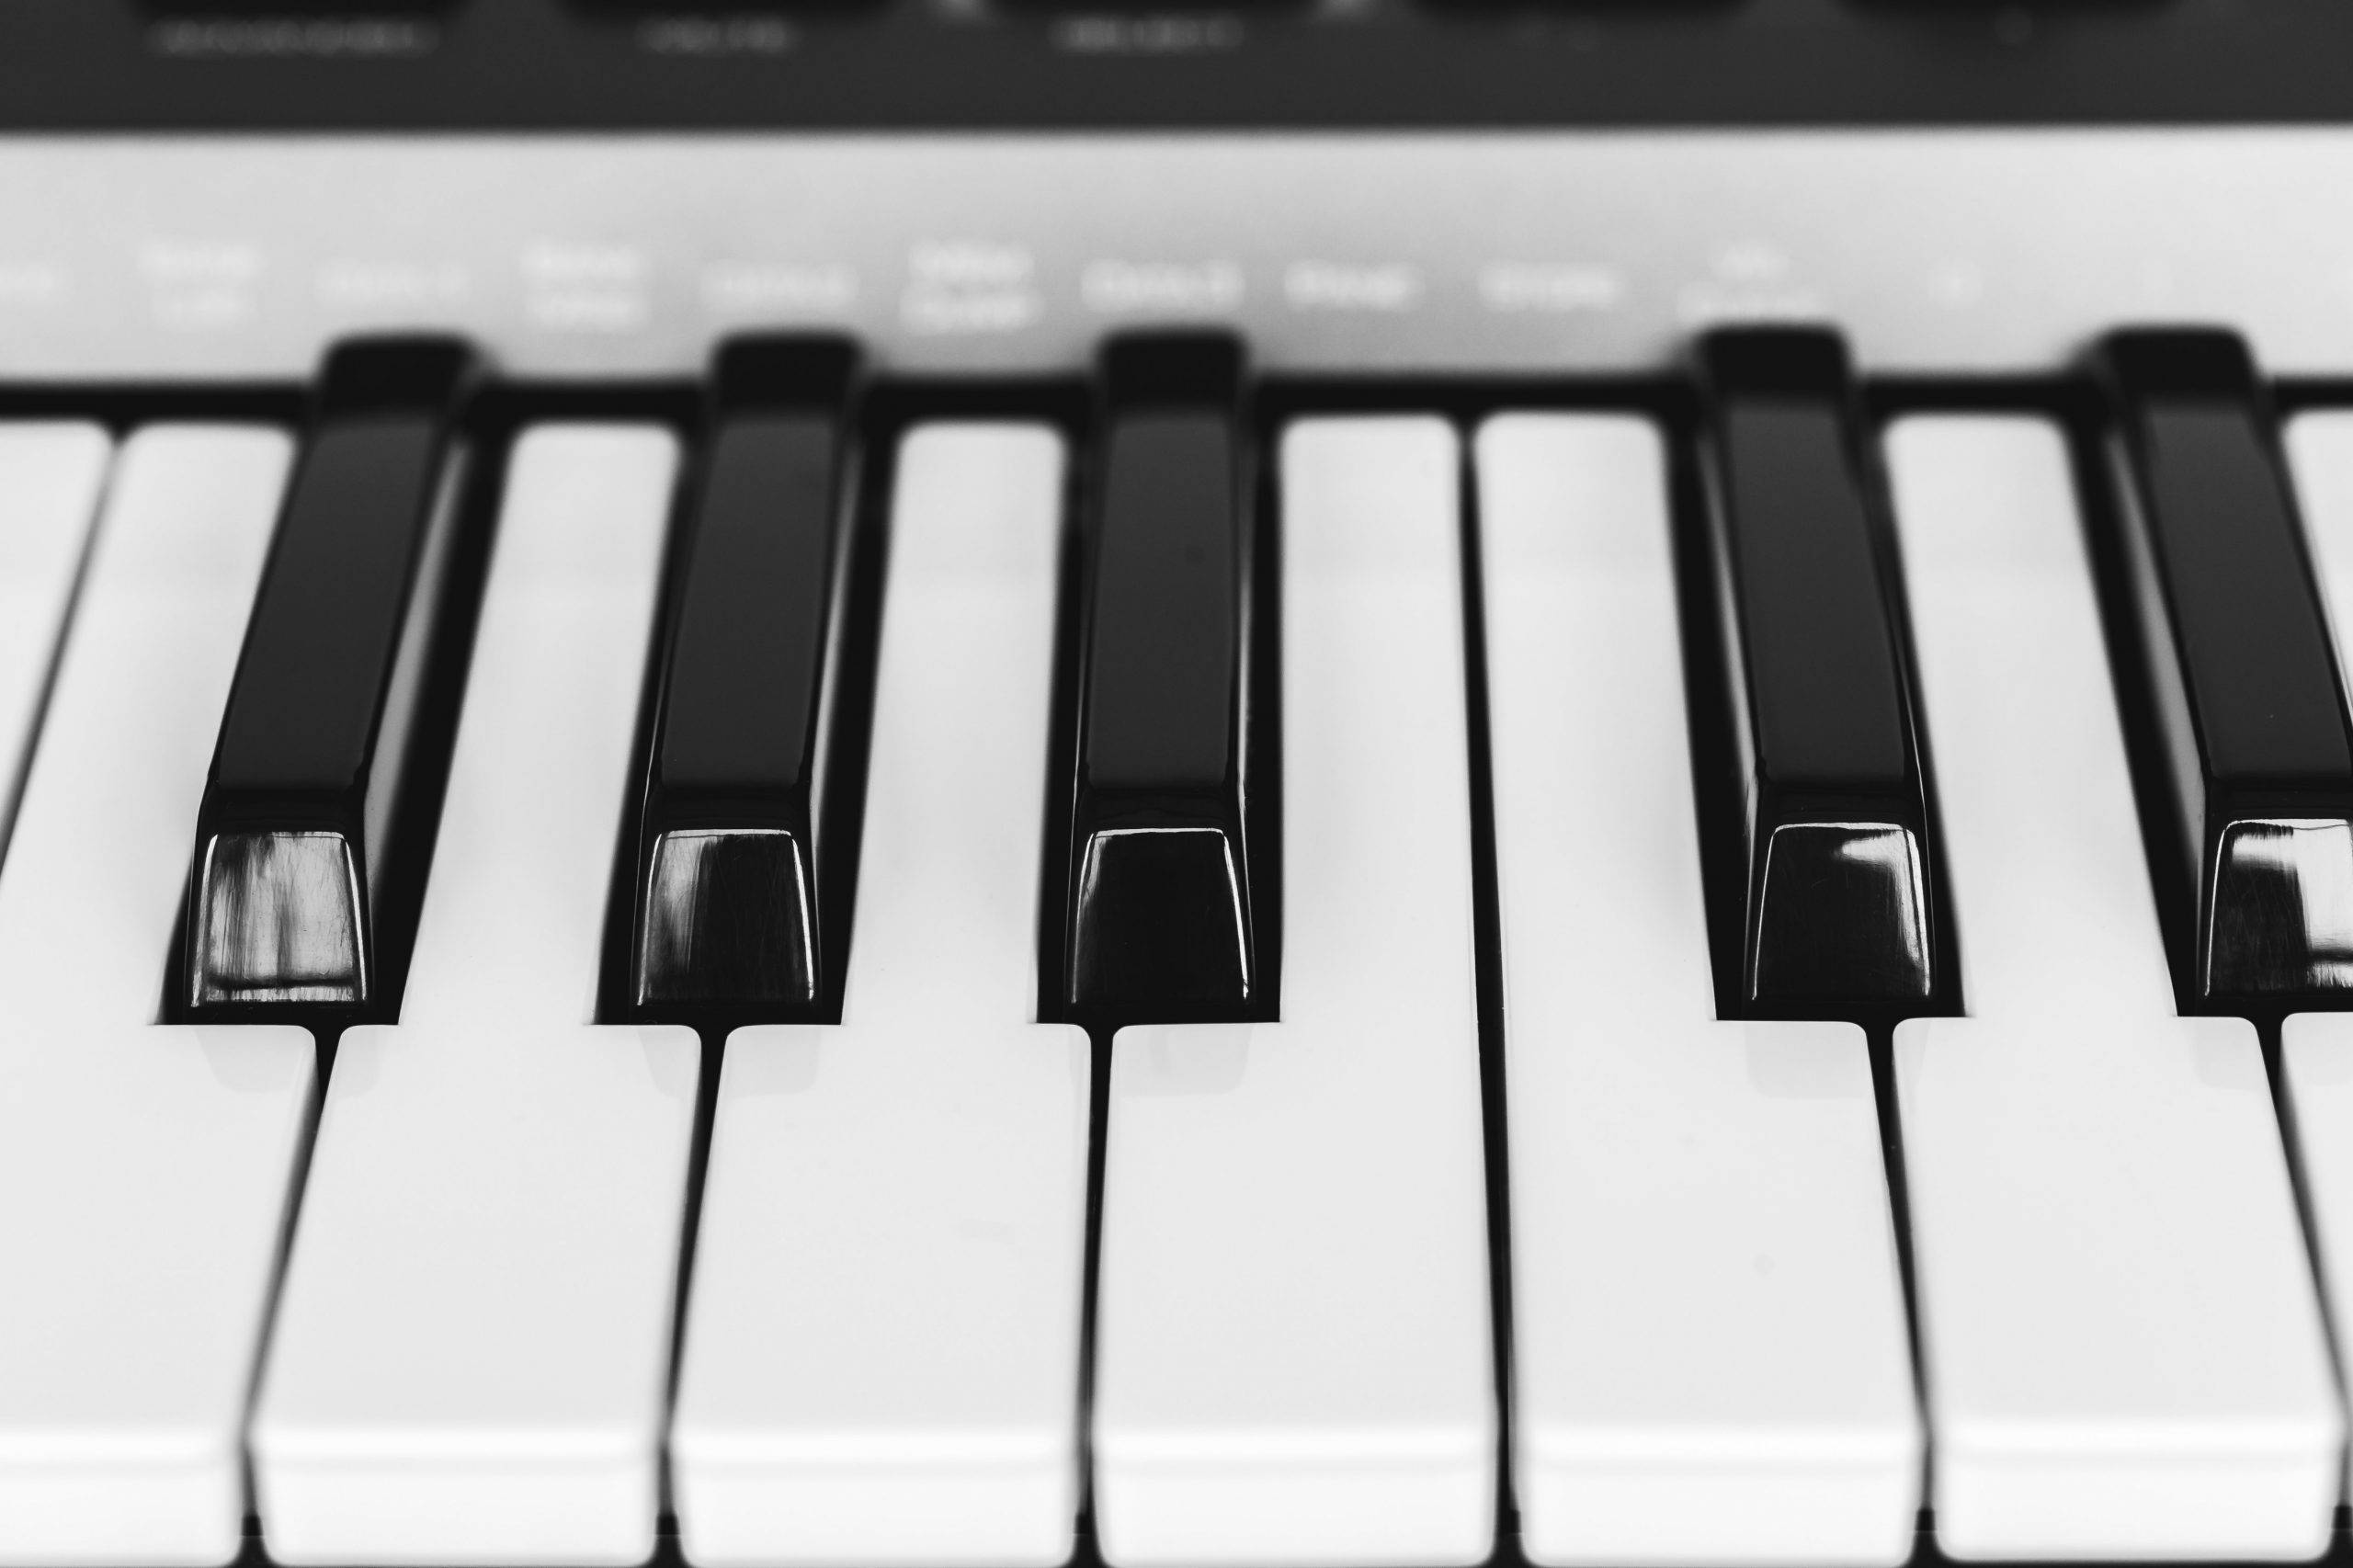 black-and-white-piano-keys-close-up